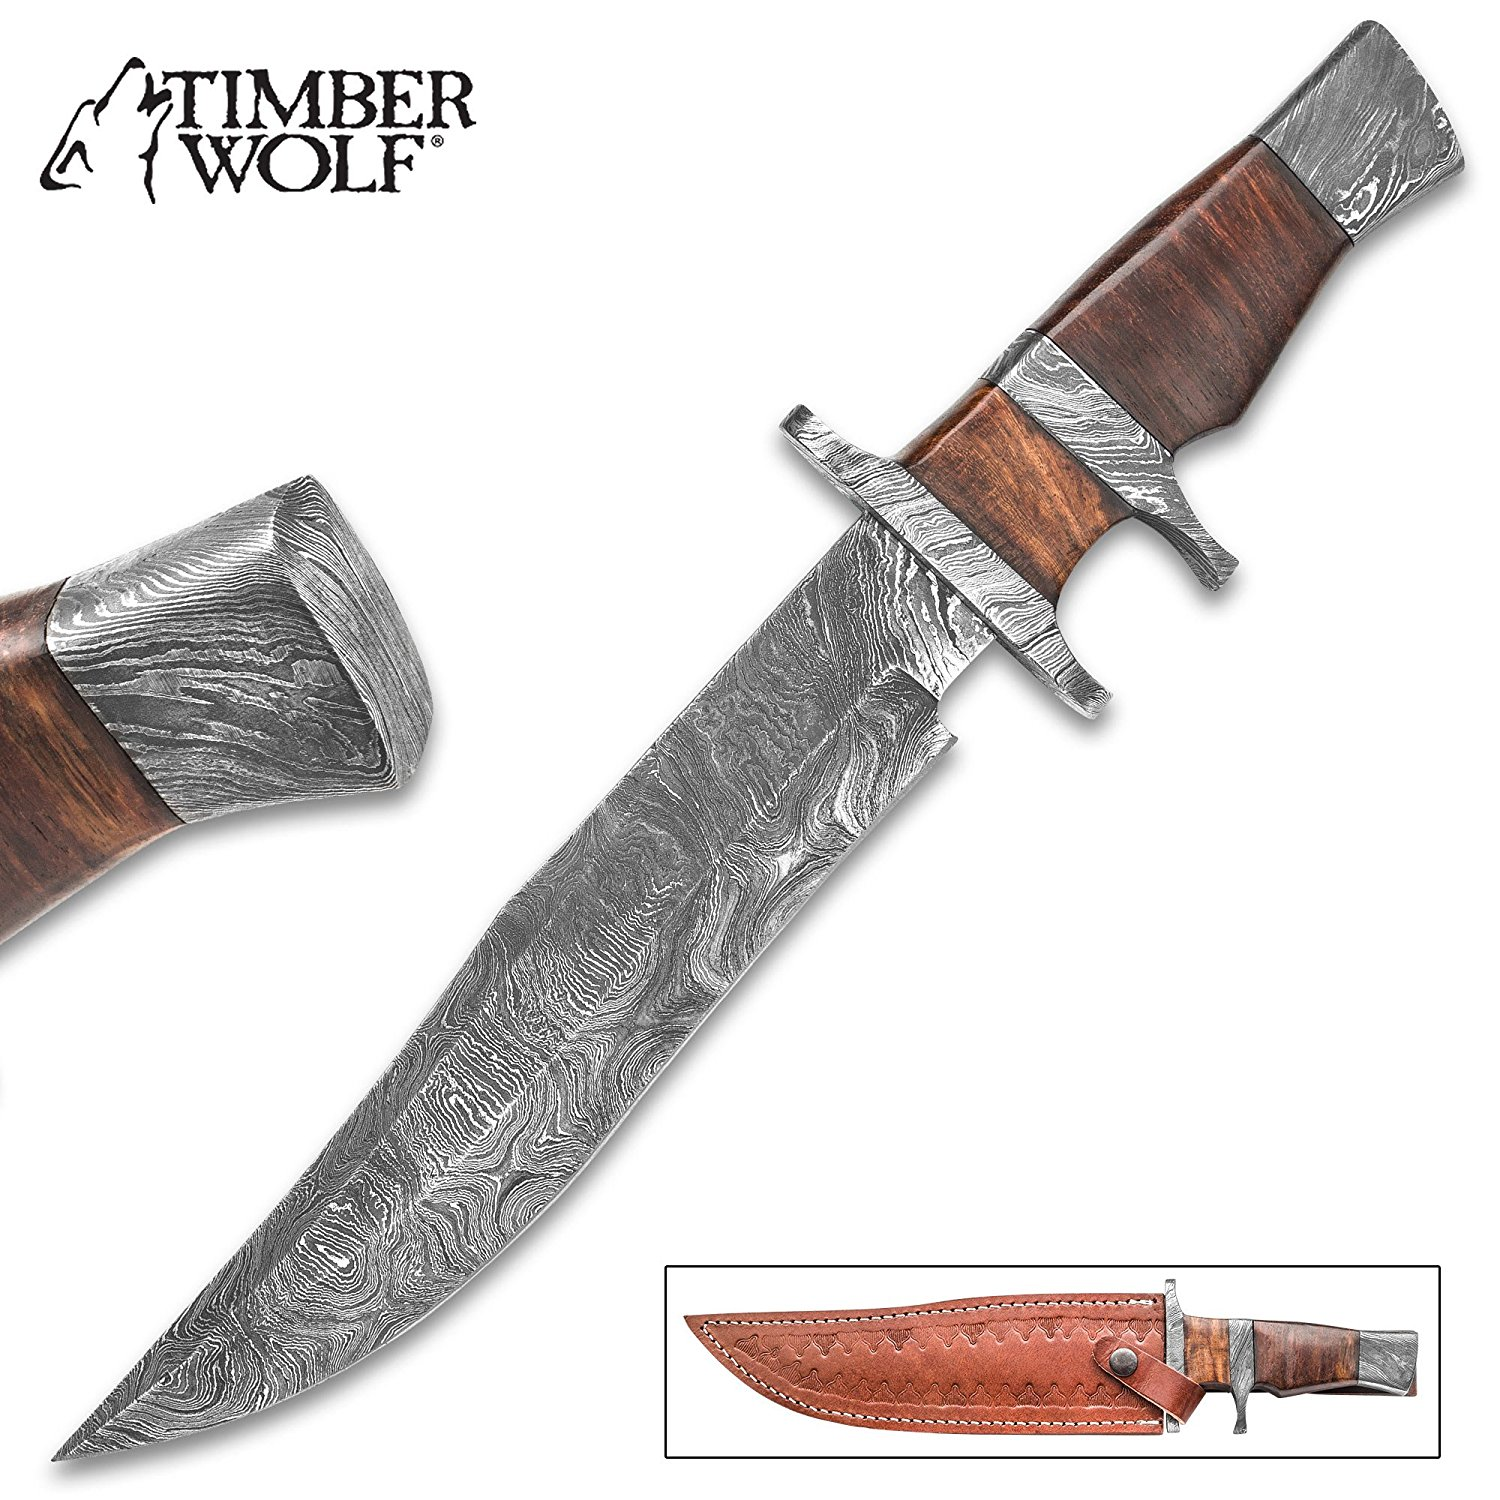 """Timber Wolf Ascension Bowie/Fixed Blade Knife - Hand Forged Damascus Steel - Sub Hilt; Heartwood - Genuine Leather Sheath - Collecting Collection Display Outdoors Hunting Camping - 14"""""""